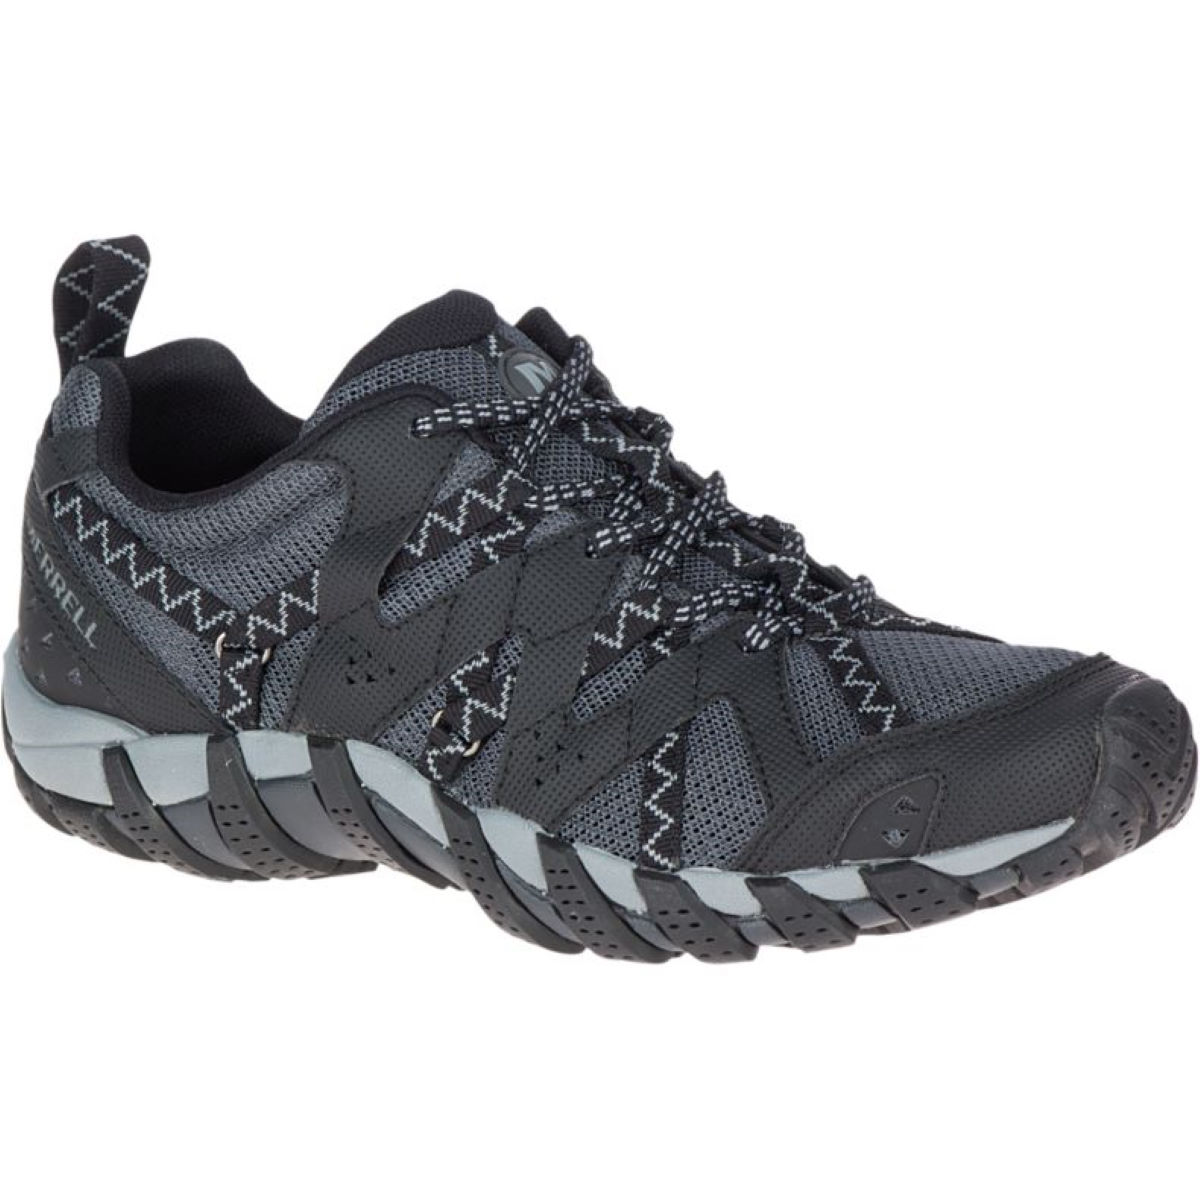 Merrell Merrell Waterpro Maipo 2 Shoes   Shoes